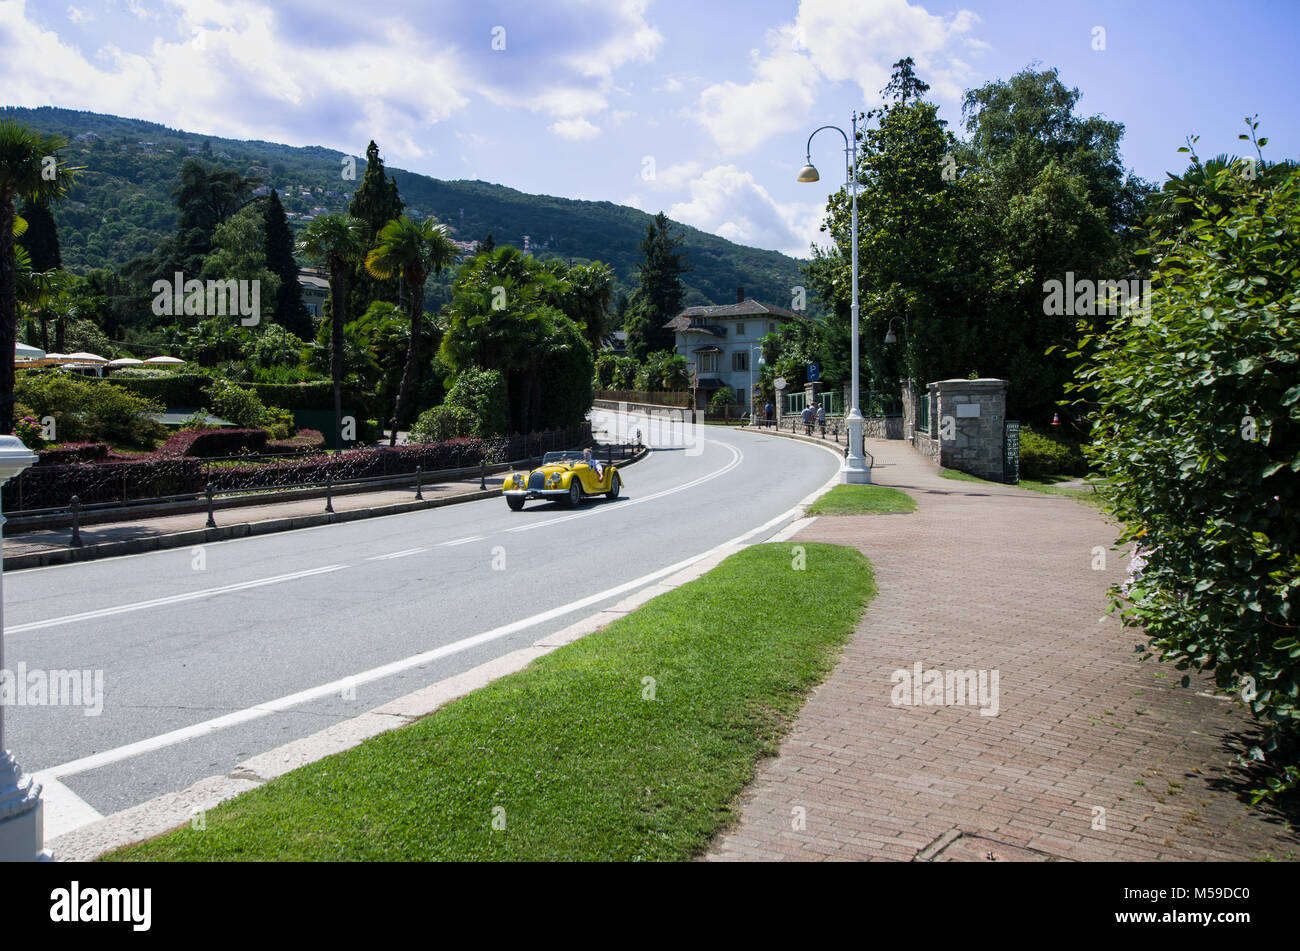 tourist traveling with his convertible car, on the roads of Lake Maggiore, Italy - Stock Image